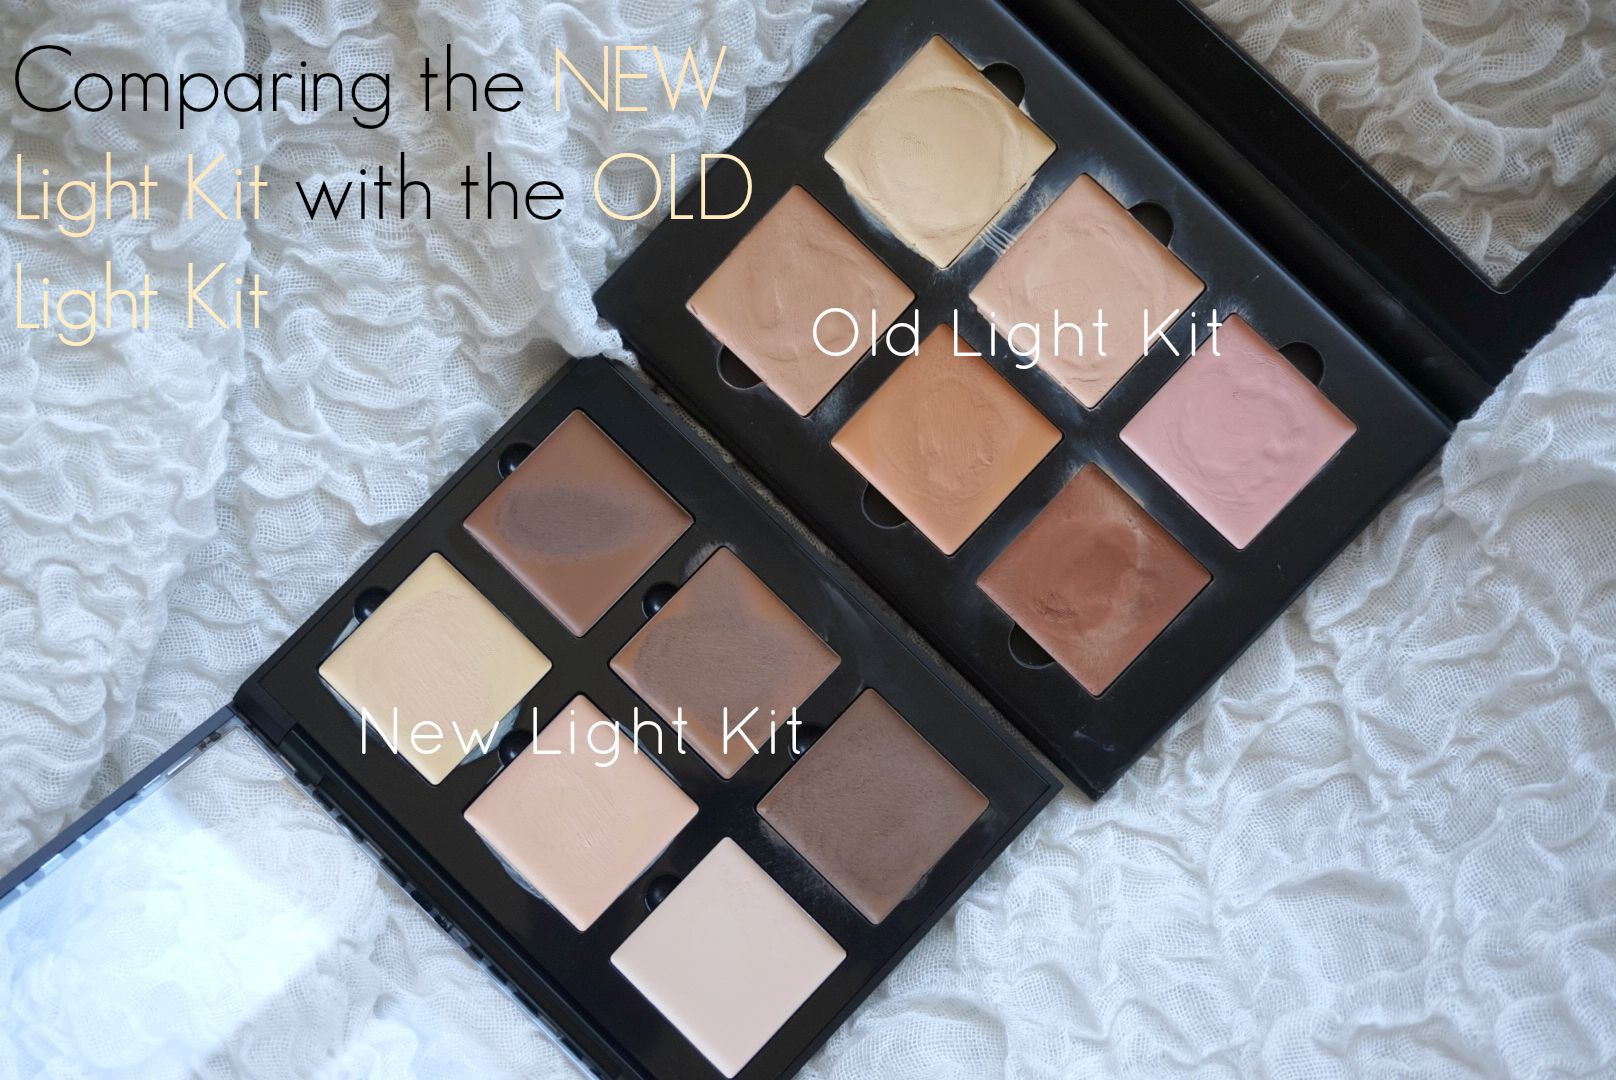 Contour Kit by glo minerals #12